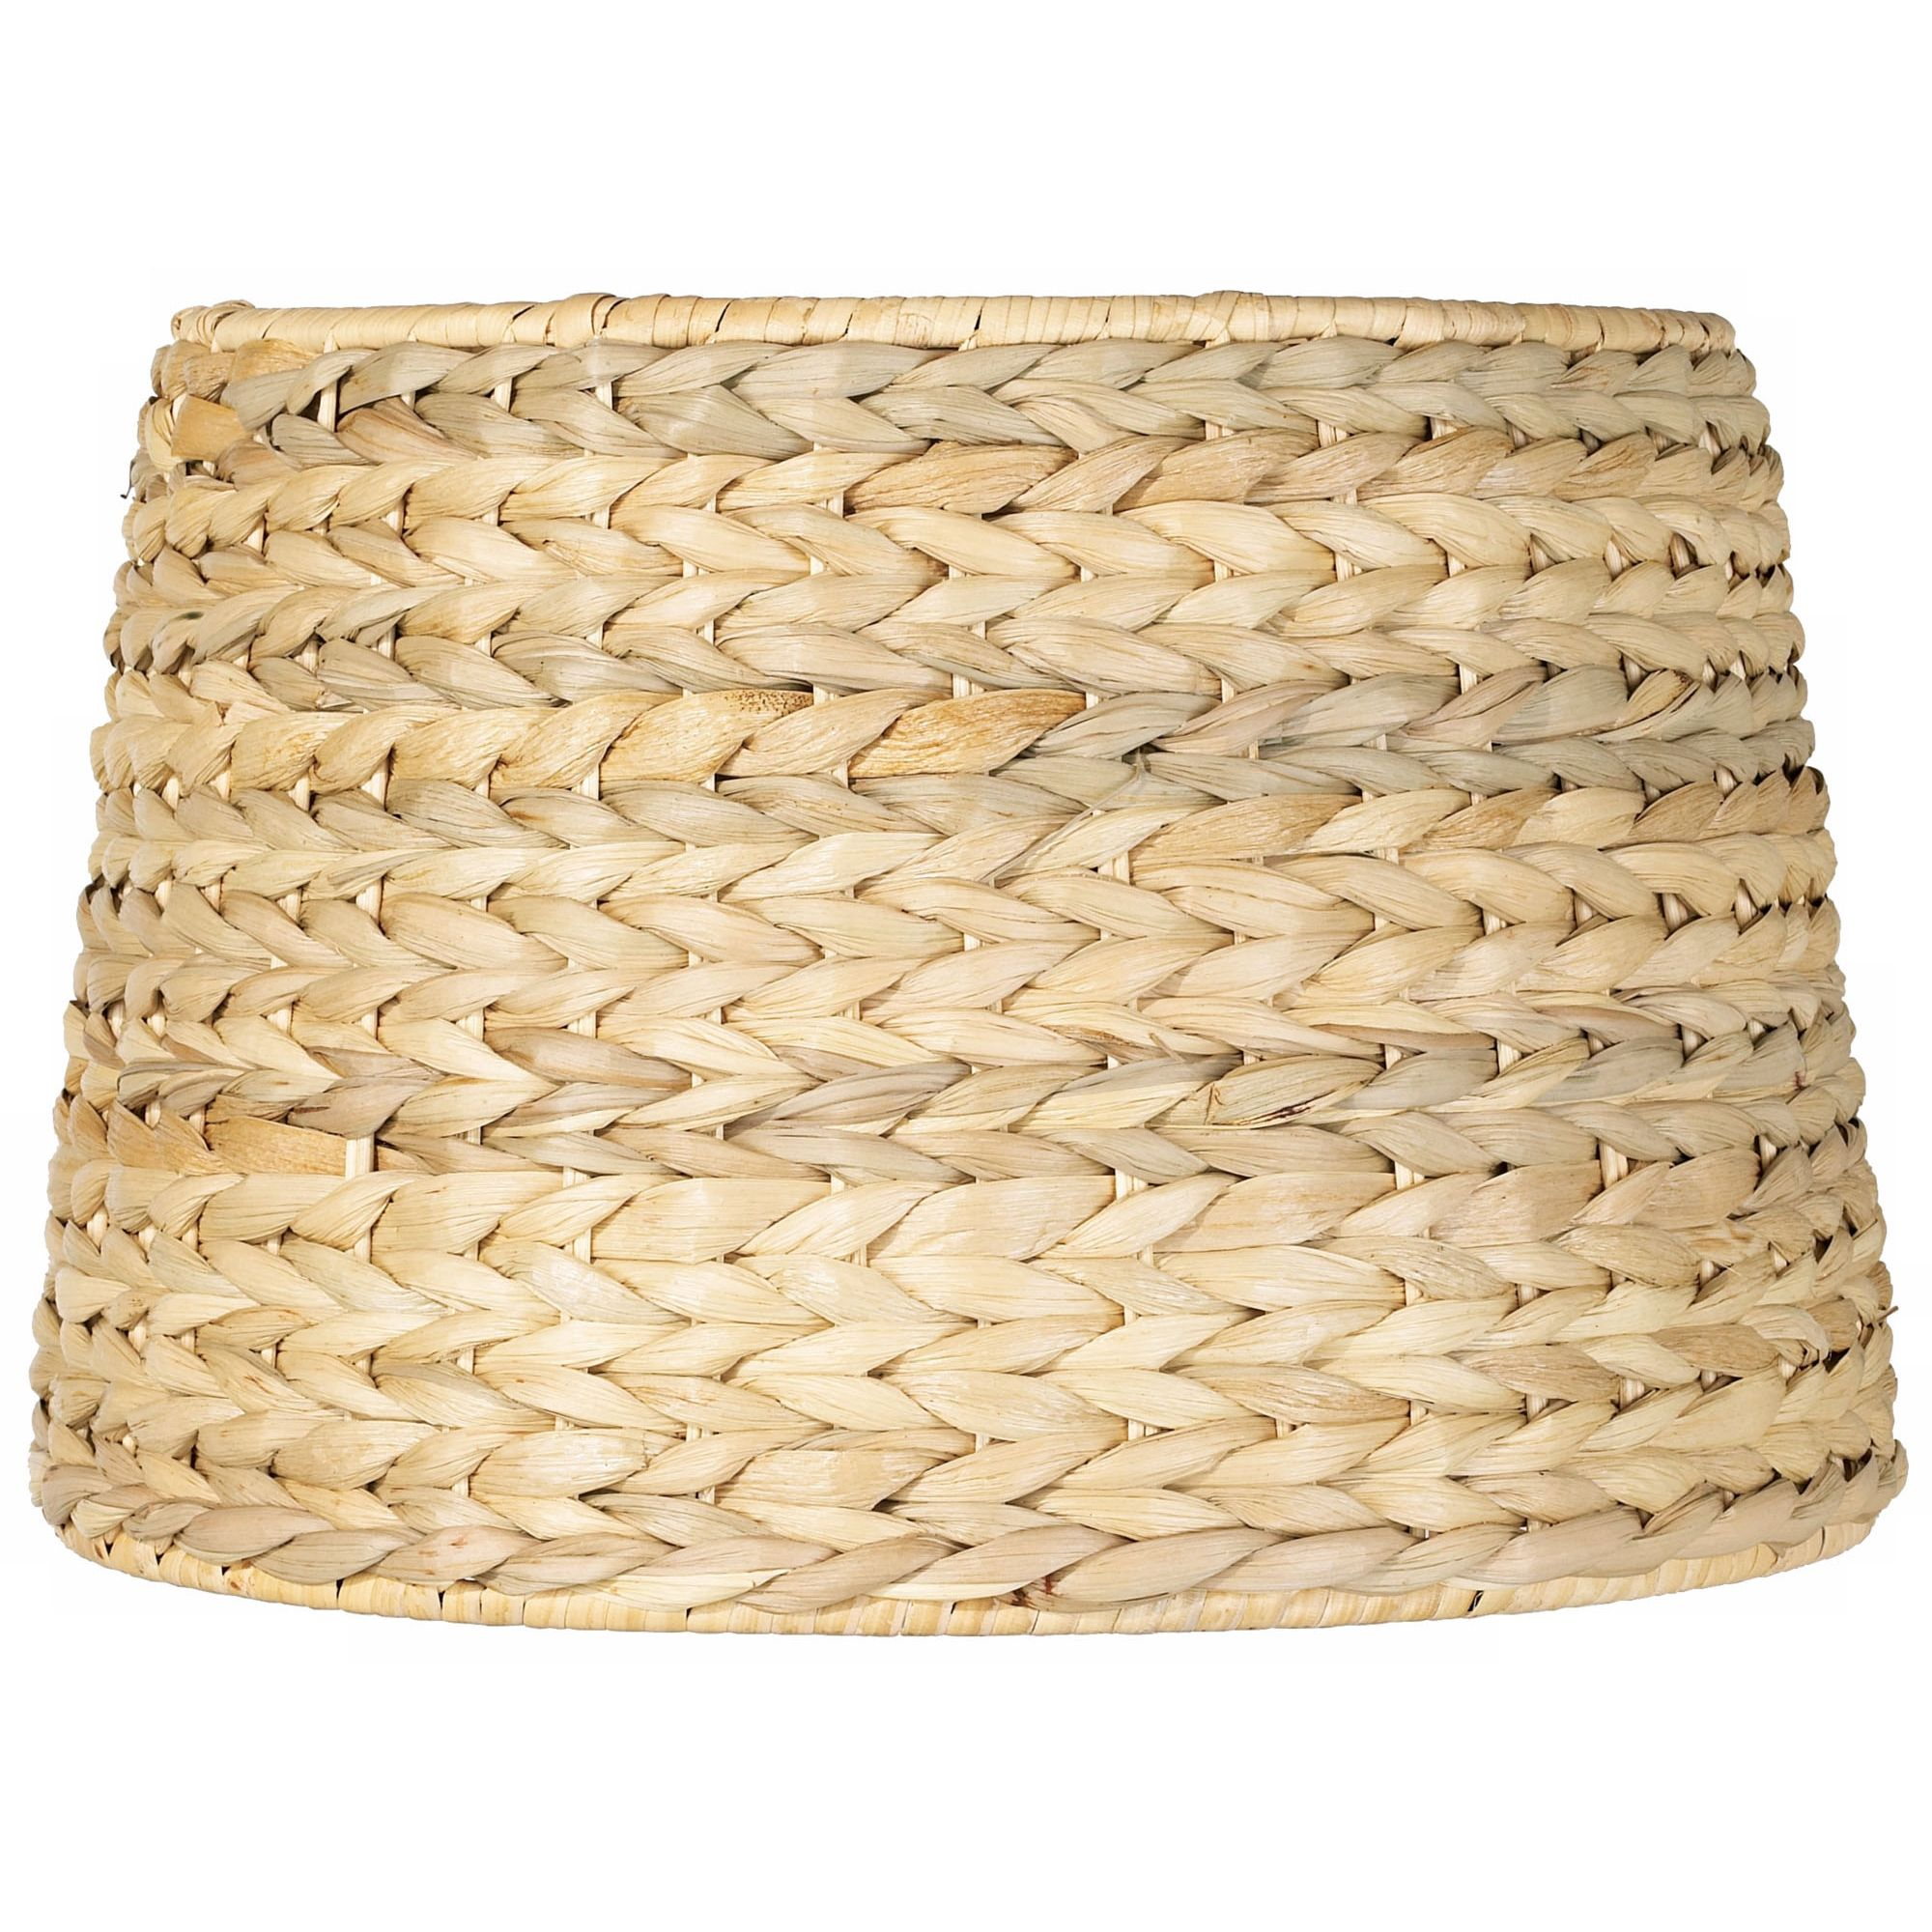 Brentwood Woven Seagrass Drum Shade 10x12x8.25 (Spider)